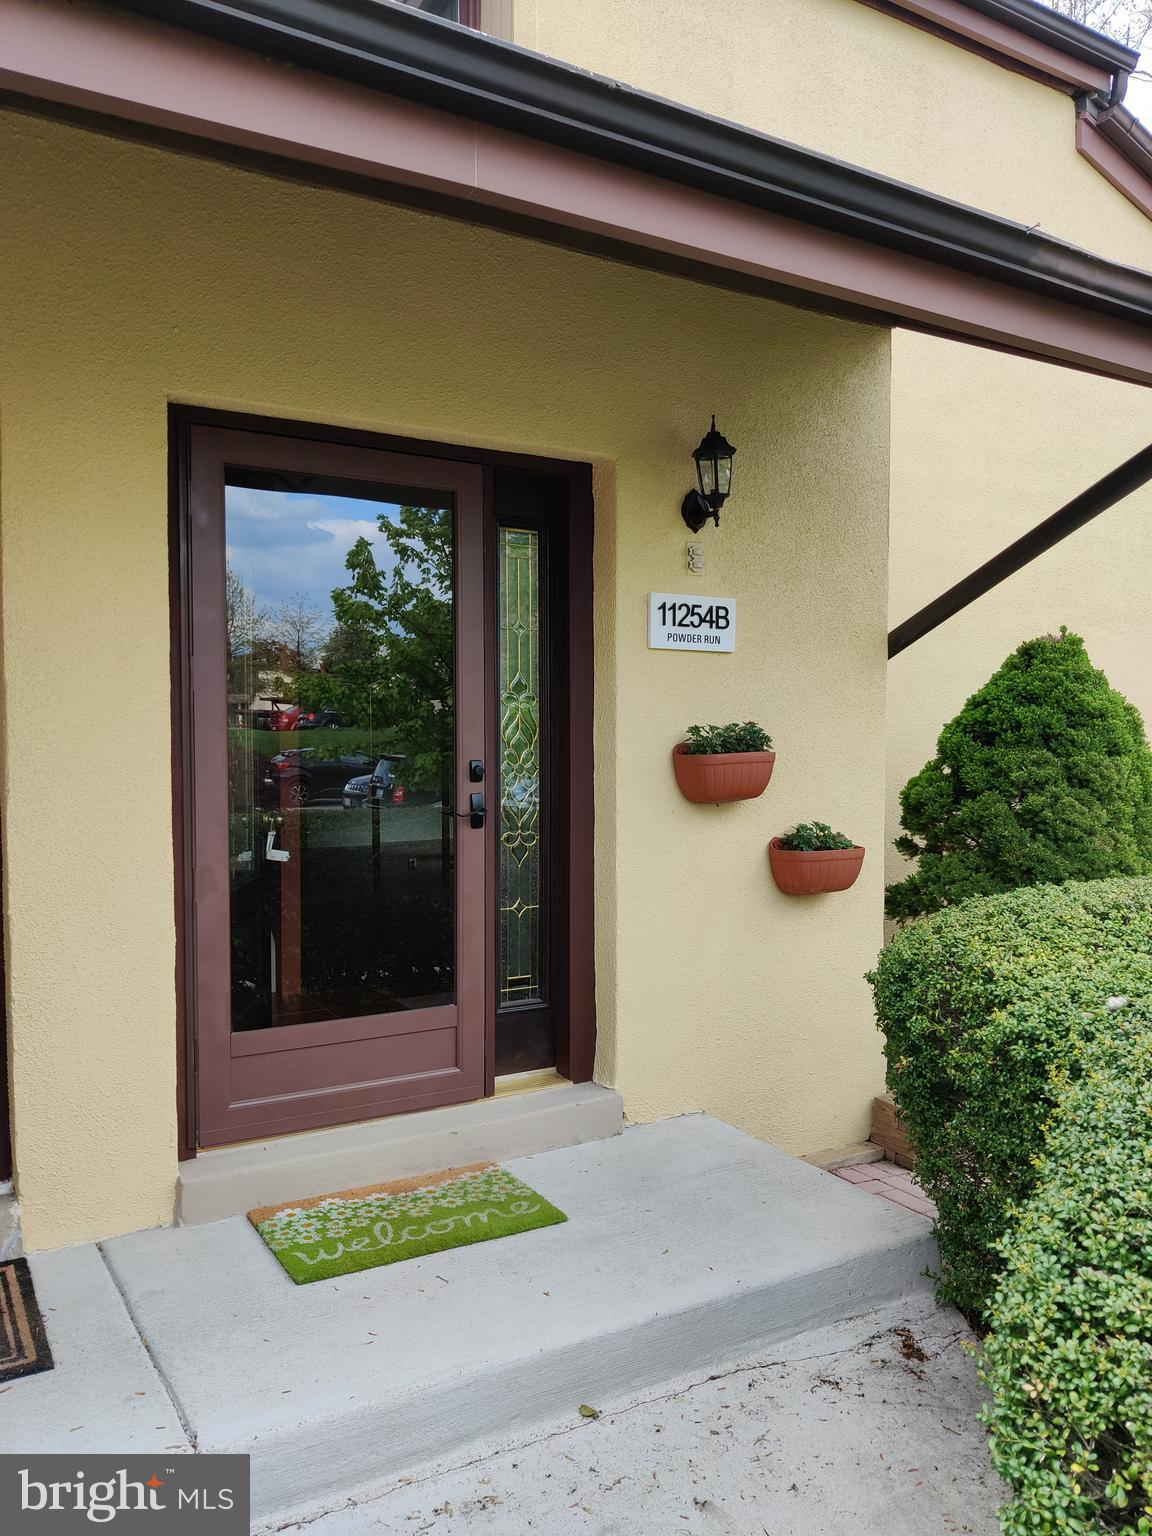 Beautifully appointed 2 bed, 1.5 bath contemporary duplex townhome. Many nice features including hea